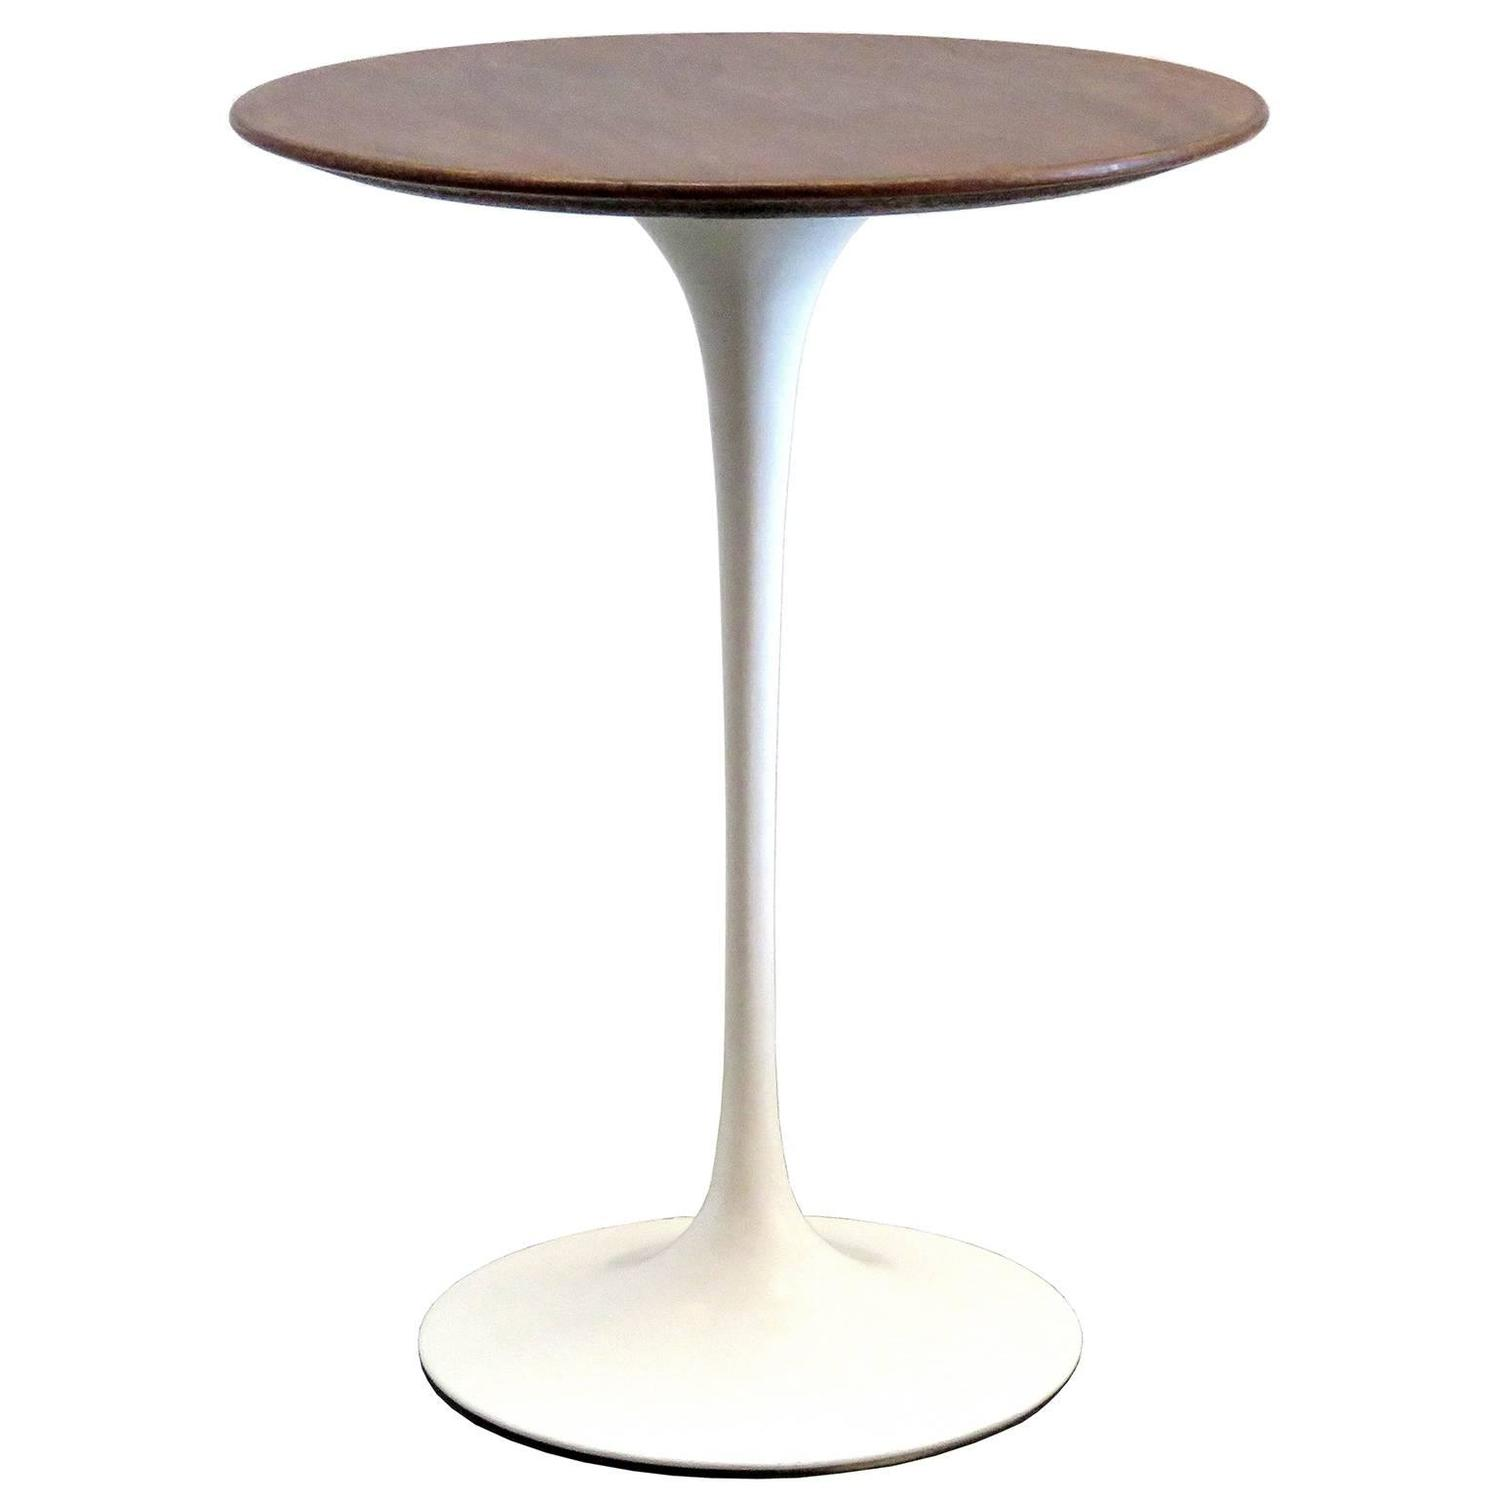 Eero saarinen for knoll 1950s walnut tulip table at 1stdibs for To the table